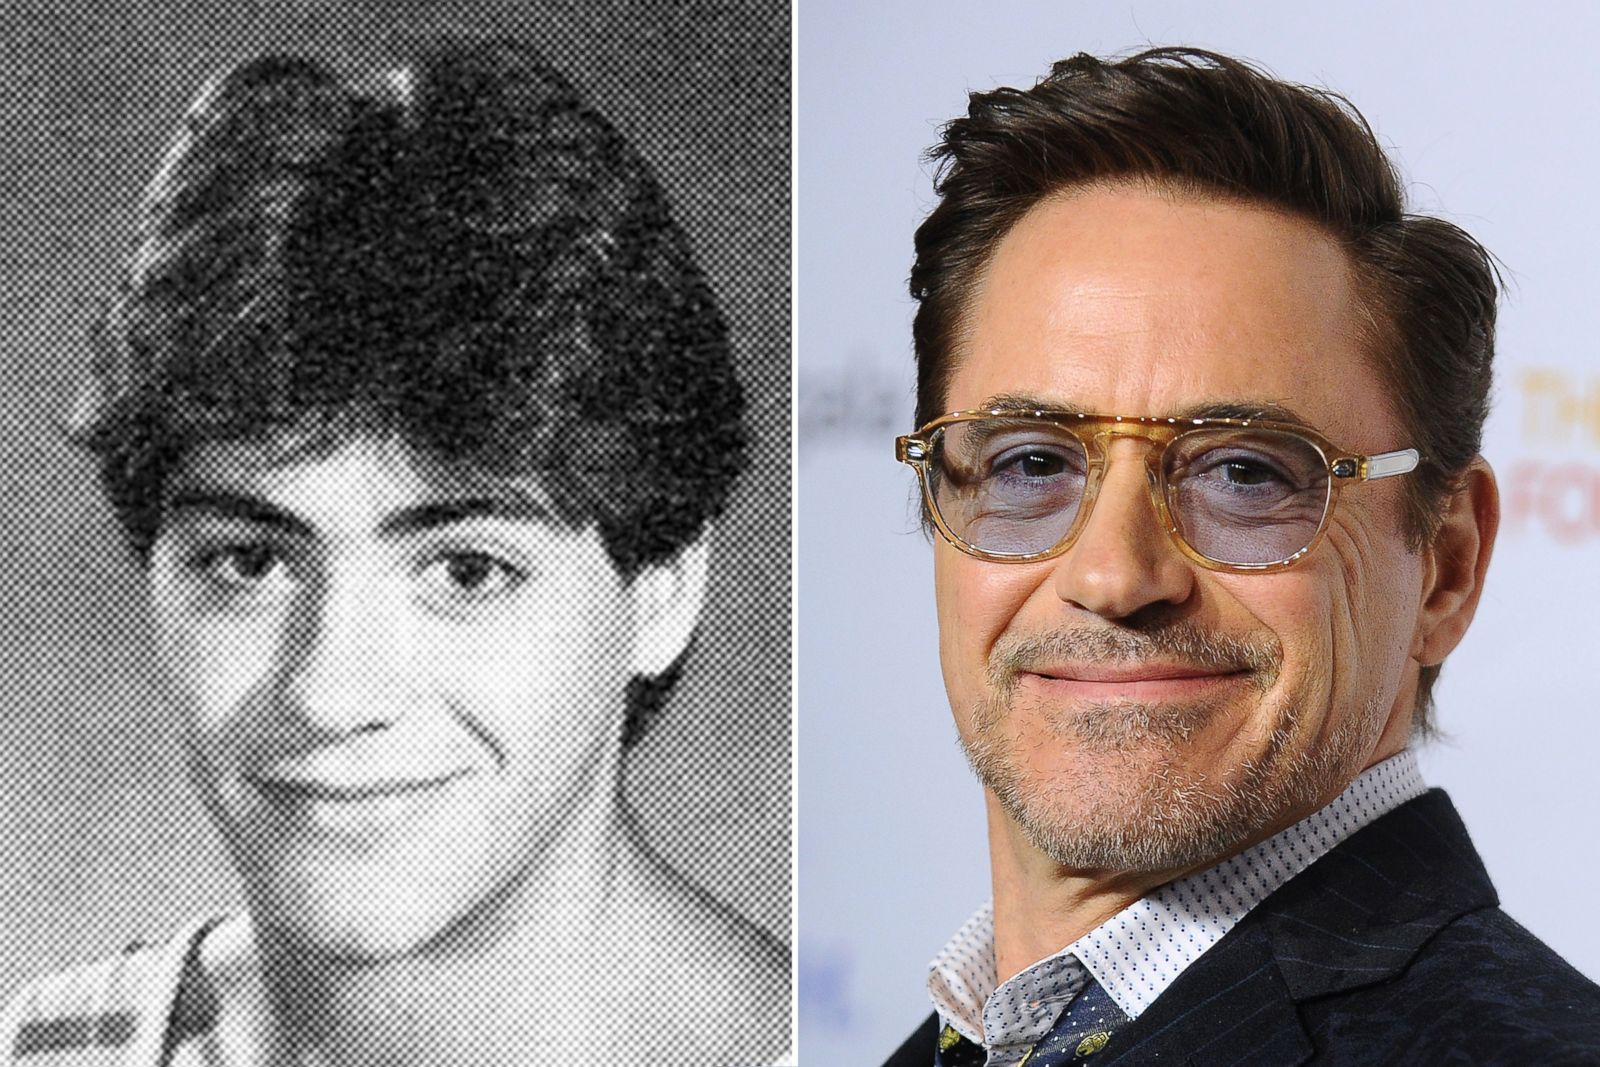 ' ' from the web at 'https://s.abcnews.com/images/Entertainment/HT-GTY-Robert-Downey-Jr-ml-170404_3x2_1600.jpg'